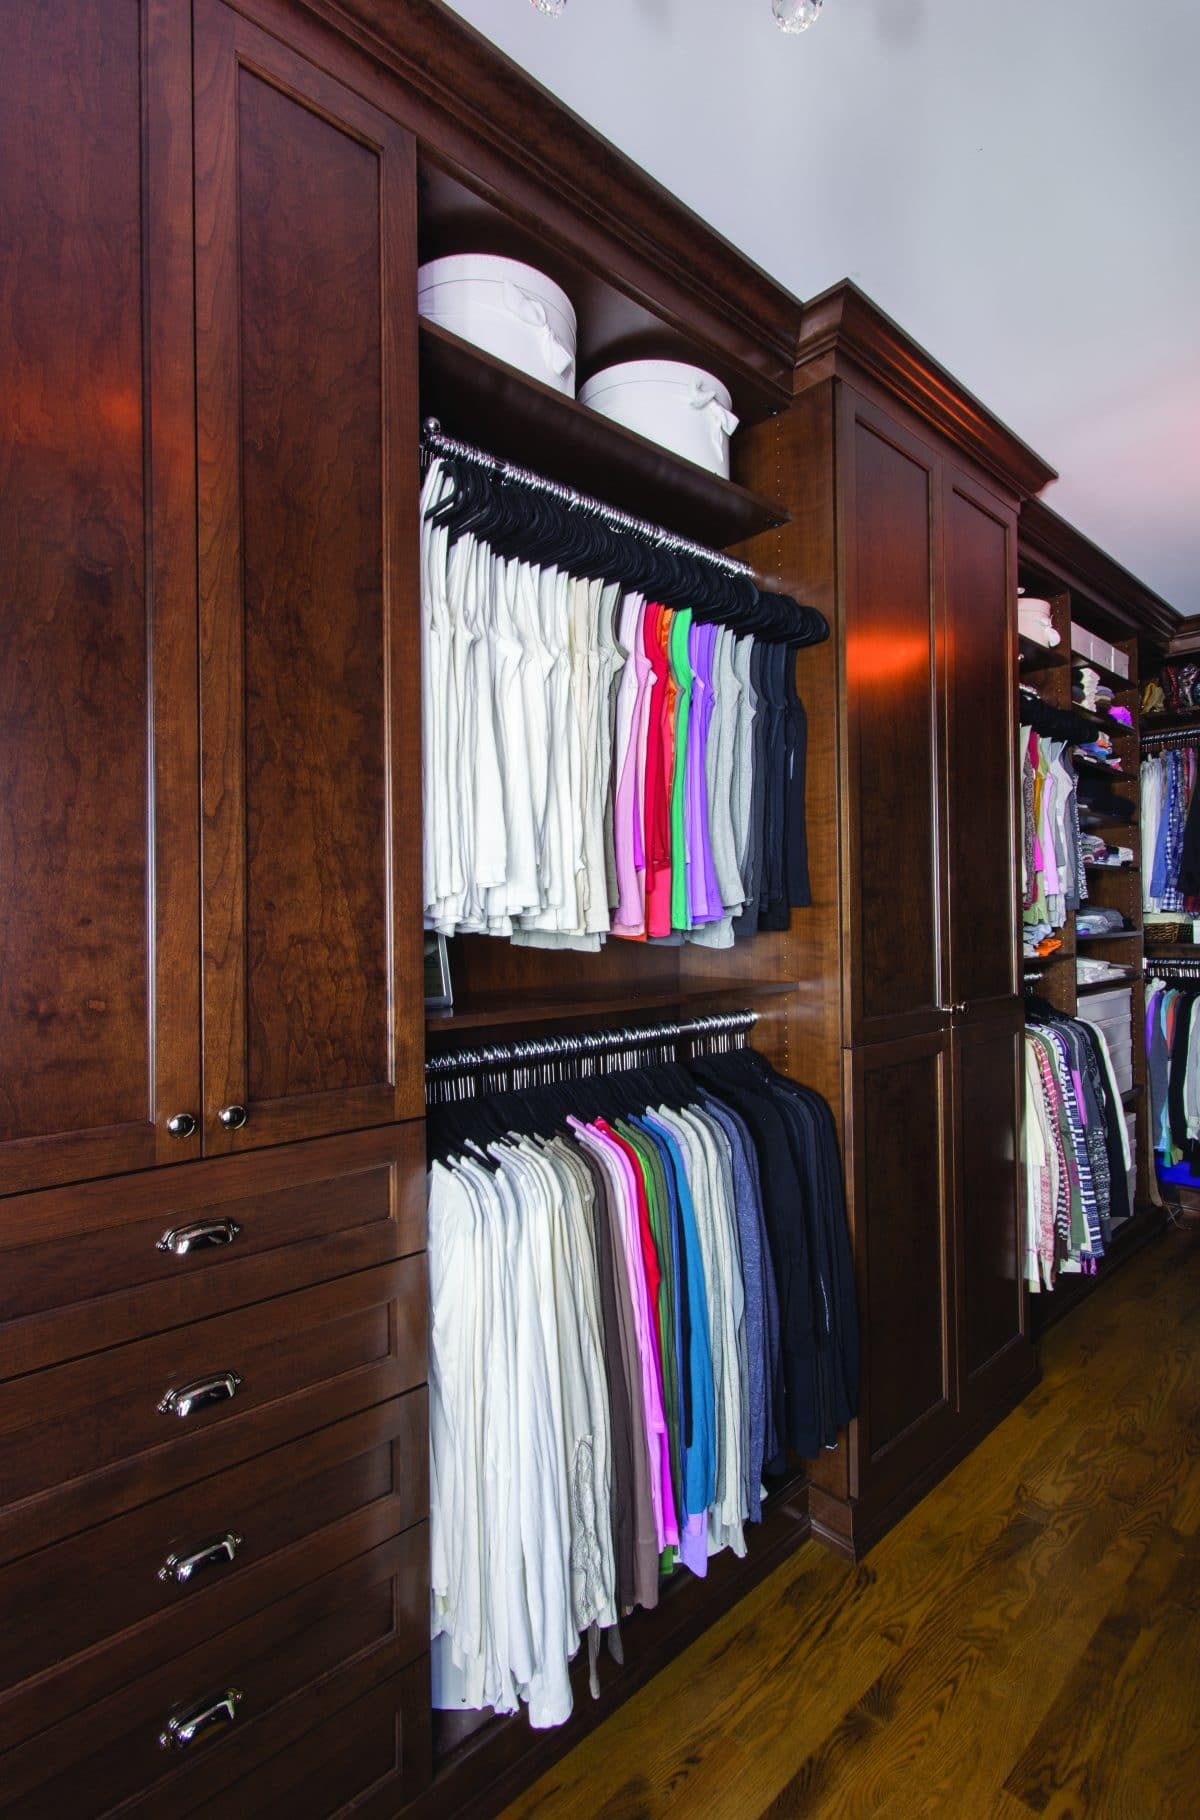 cubes size systems closets canada bedroom installation design rubbermaid closet wire white organizer full shelving closetmaid wood maid by storage kits of